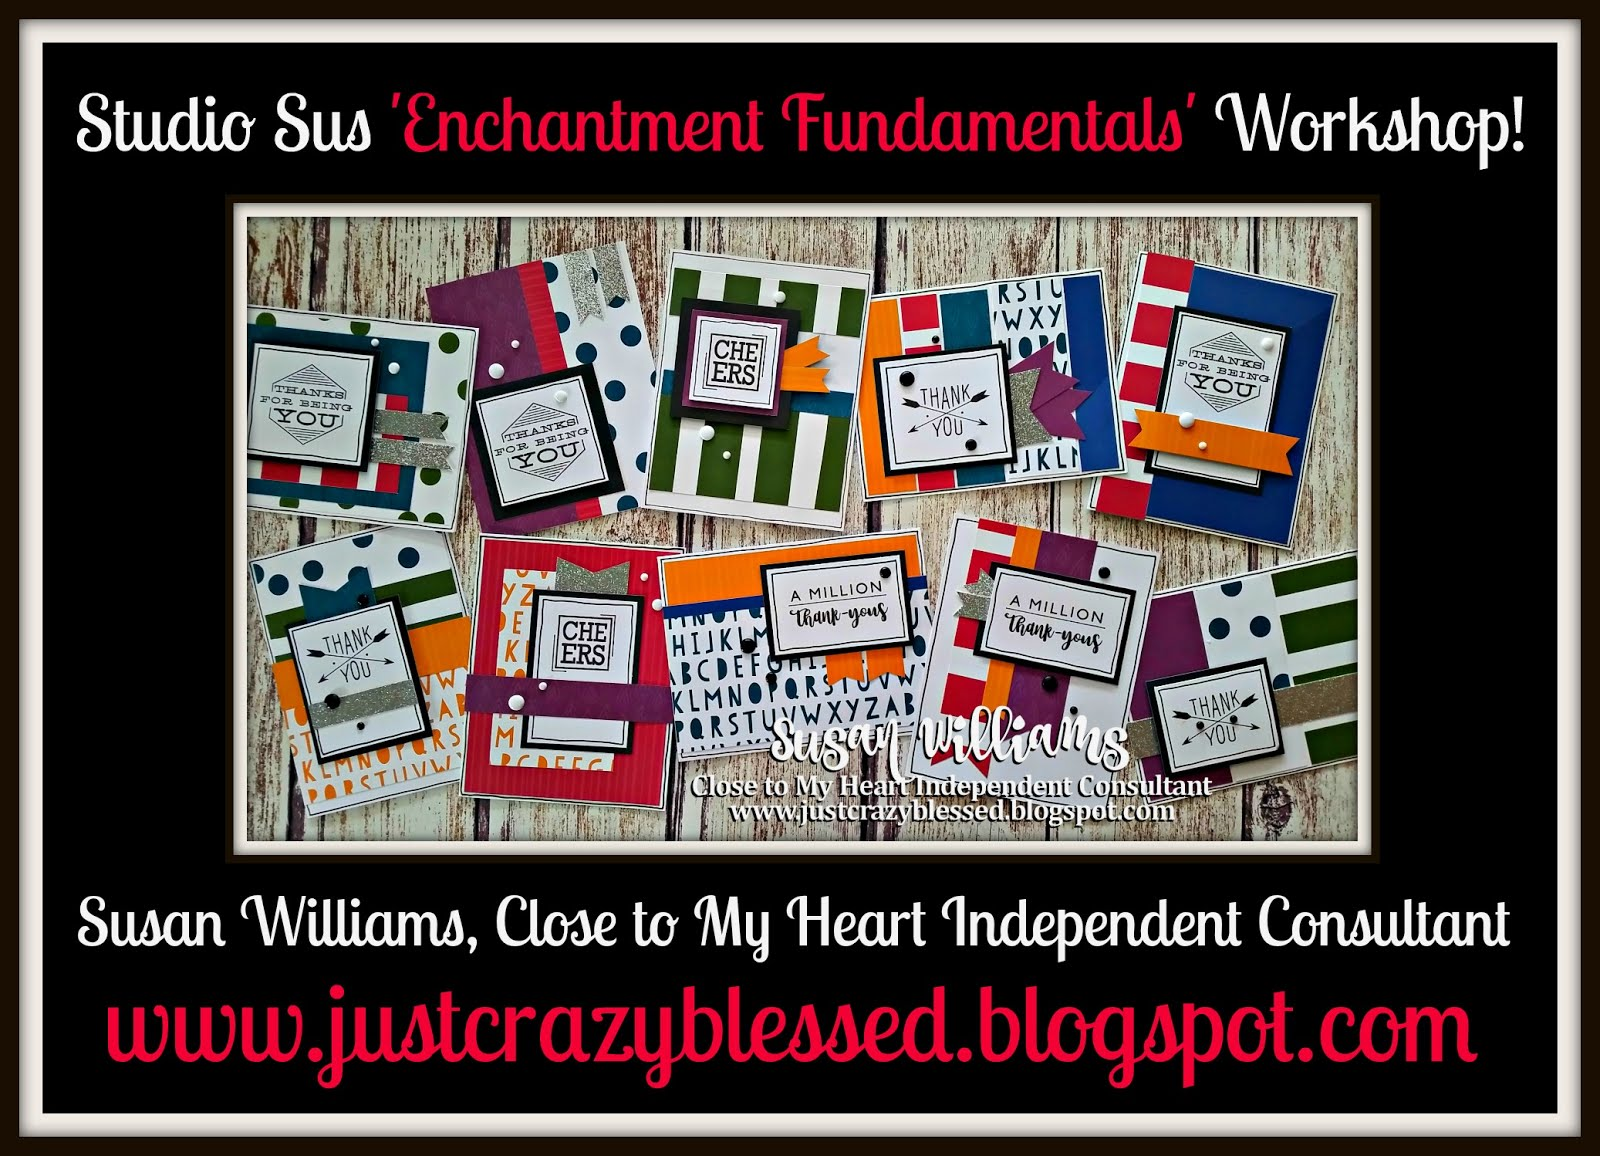 'Enchantment Fundamentals' Bulk Cardmaking Workshop!